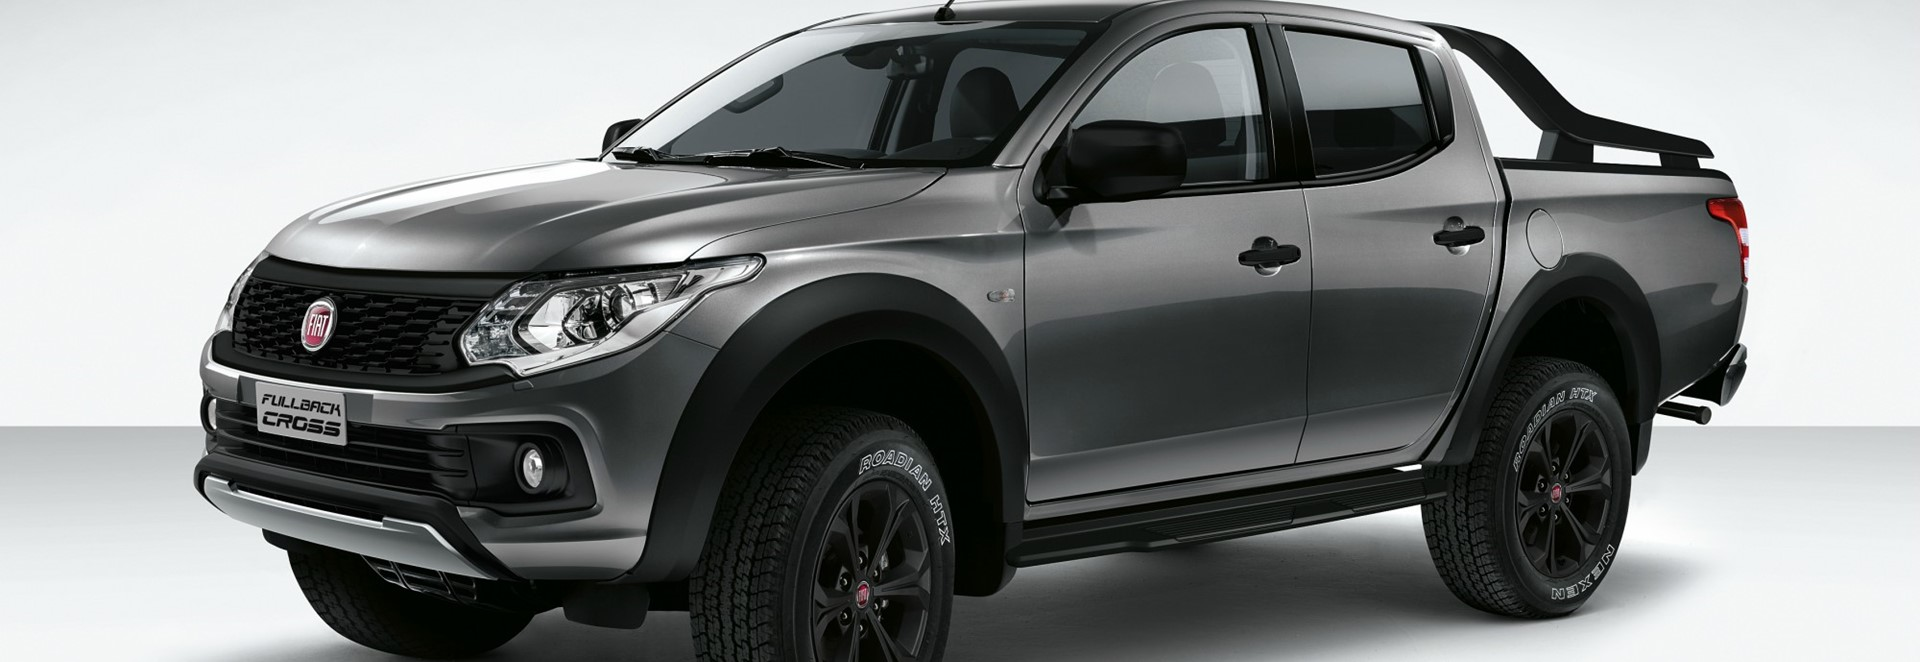 most stylish pick up ever fiat reveals new fullback cross car keys. Black Bedroom Furniture Sets. Home Design Ideas